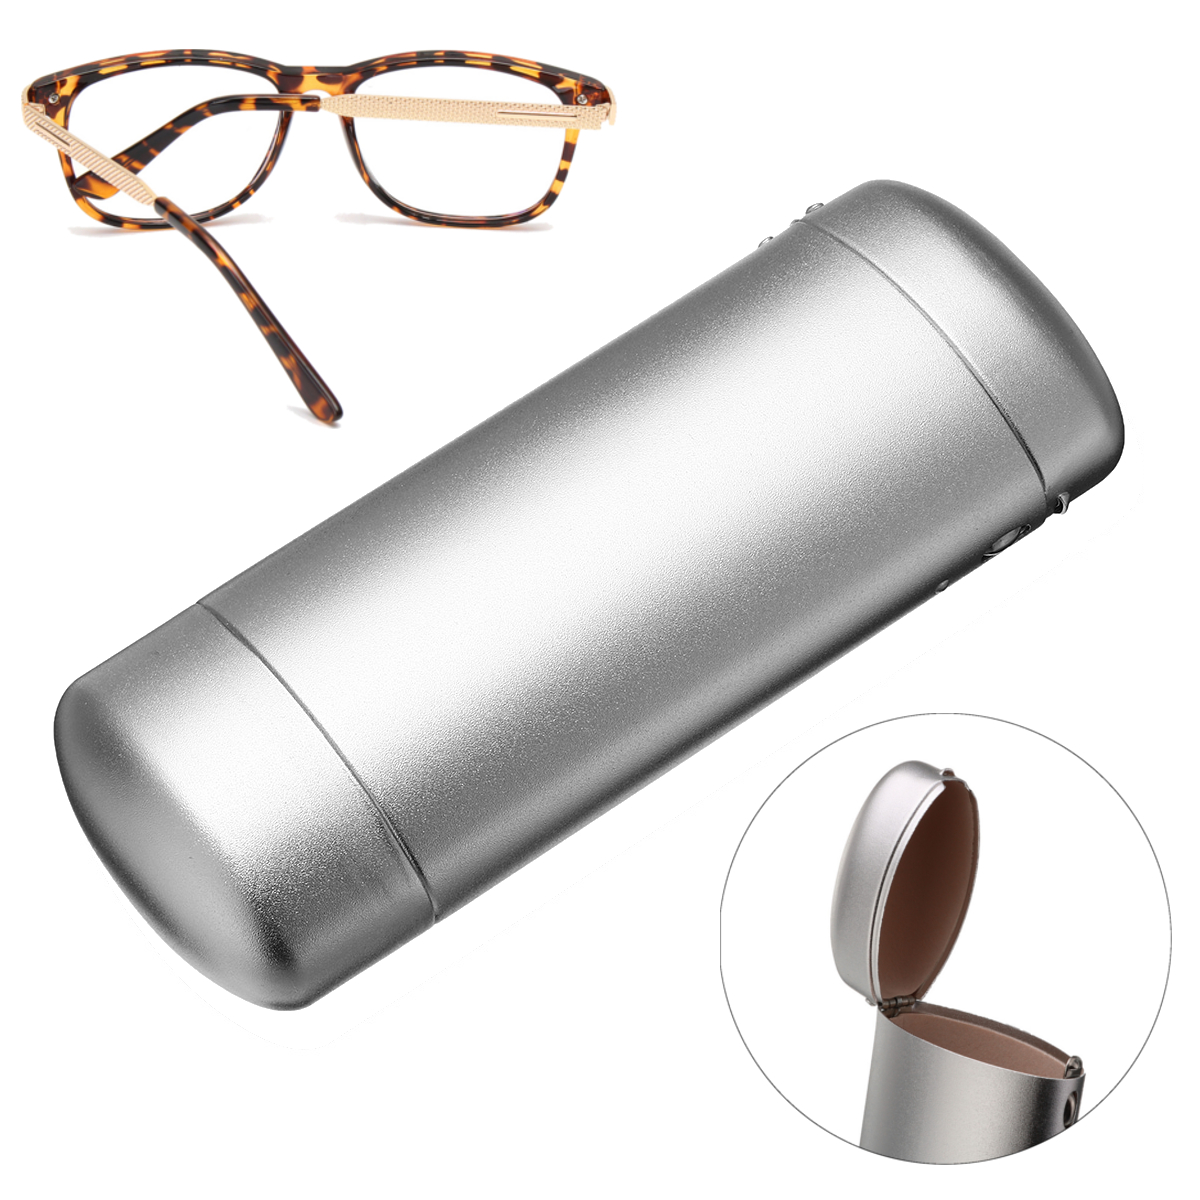 Hard Baskets Metal Glossy Glasses Spectacle Case Box Storage Eyeglasses Case Protector